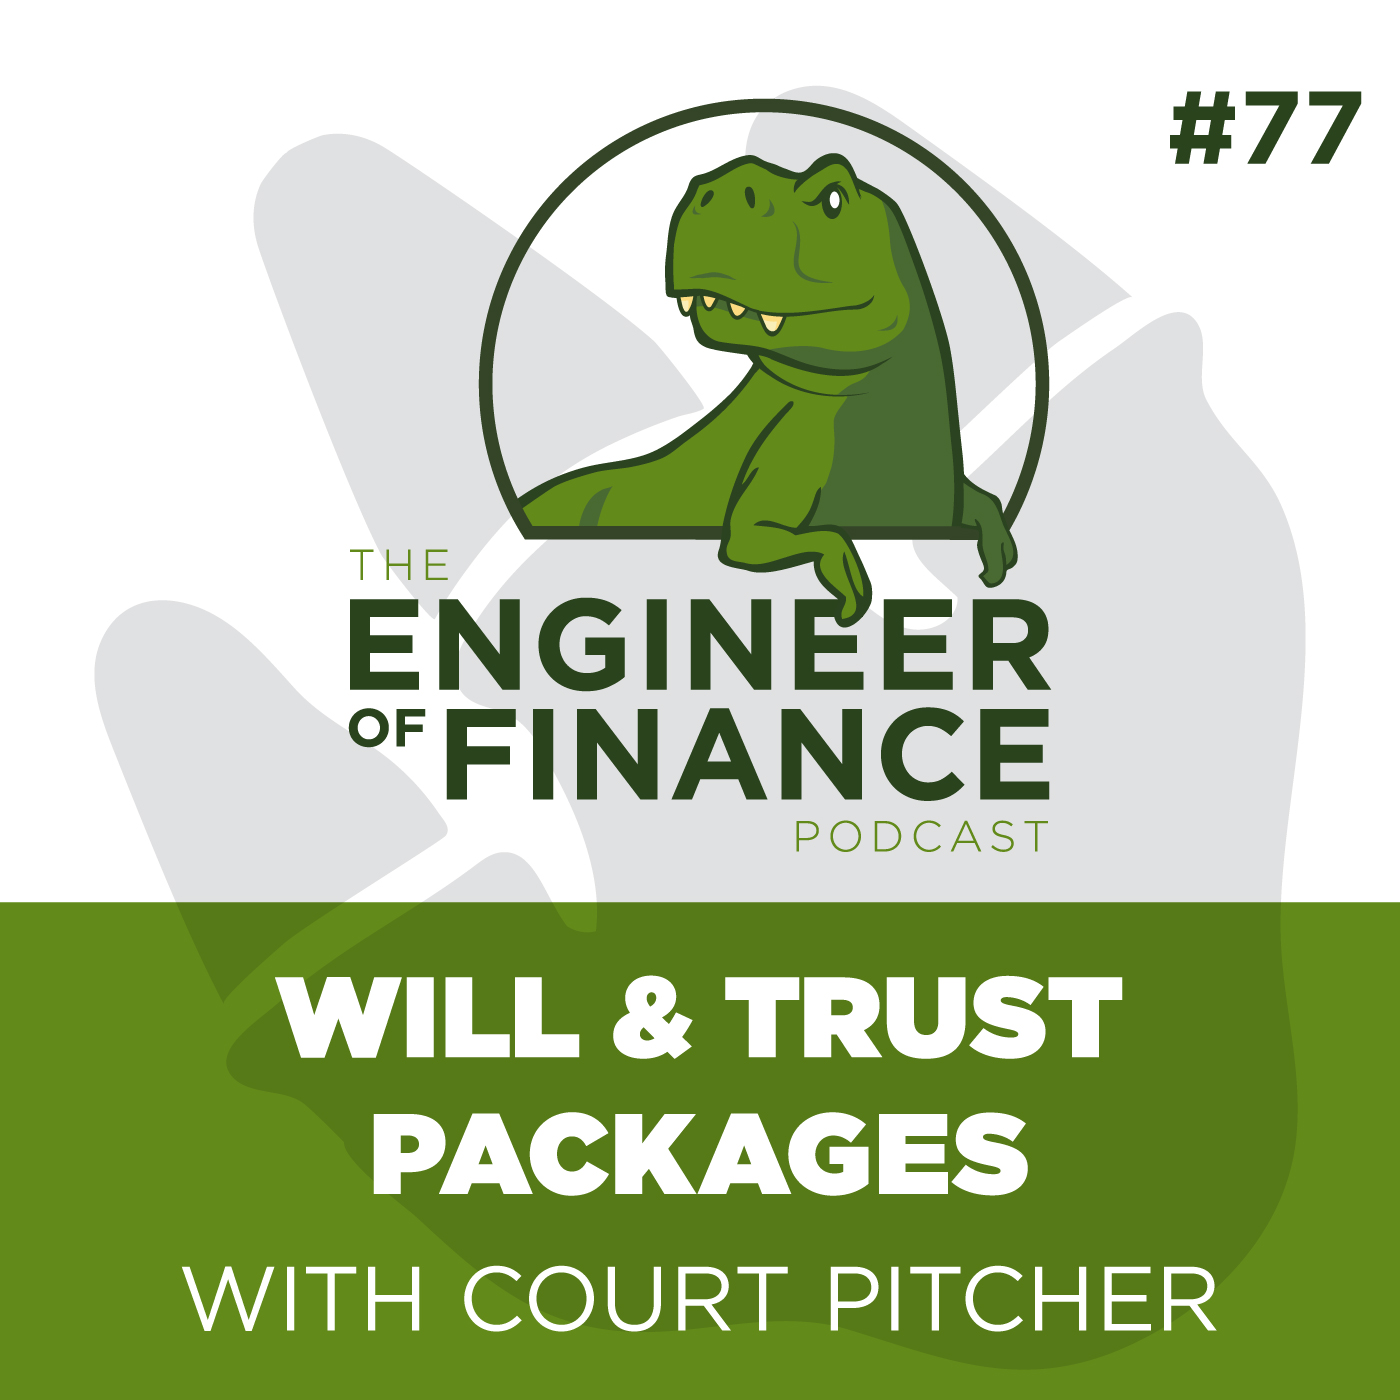 Will & Trust Packages with Court Pitcher – Episode 77